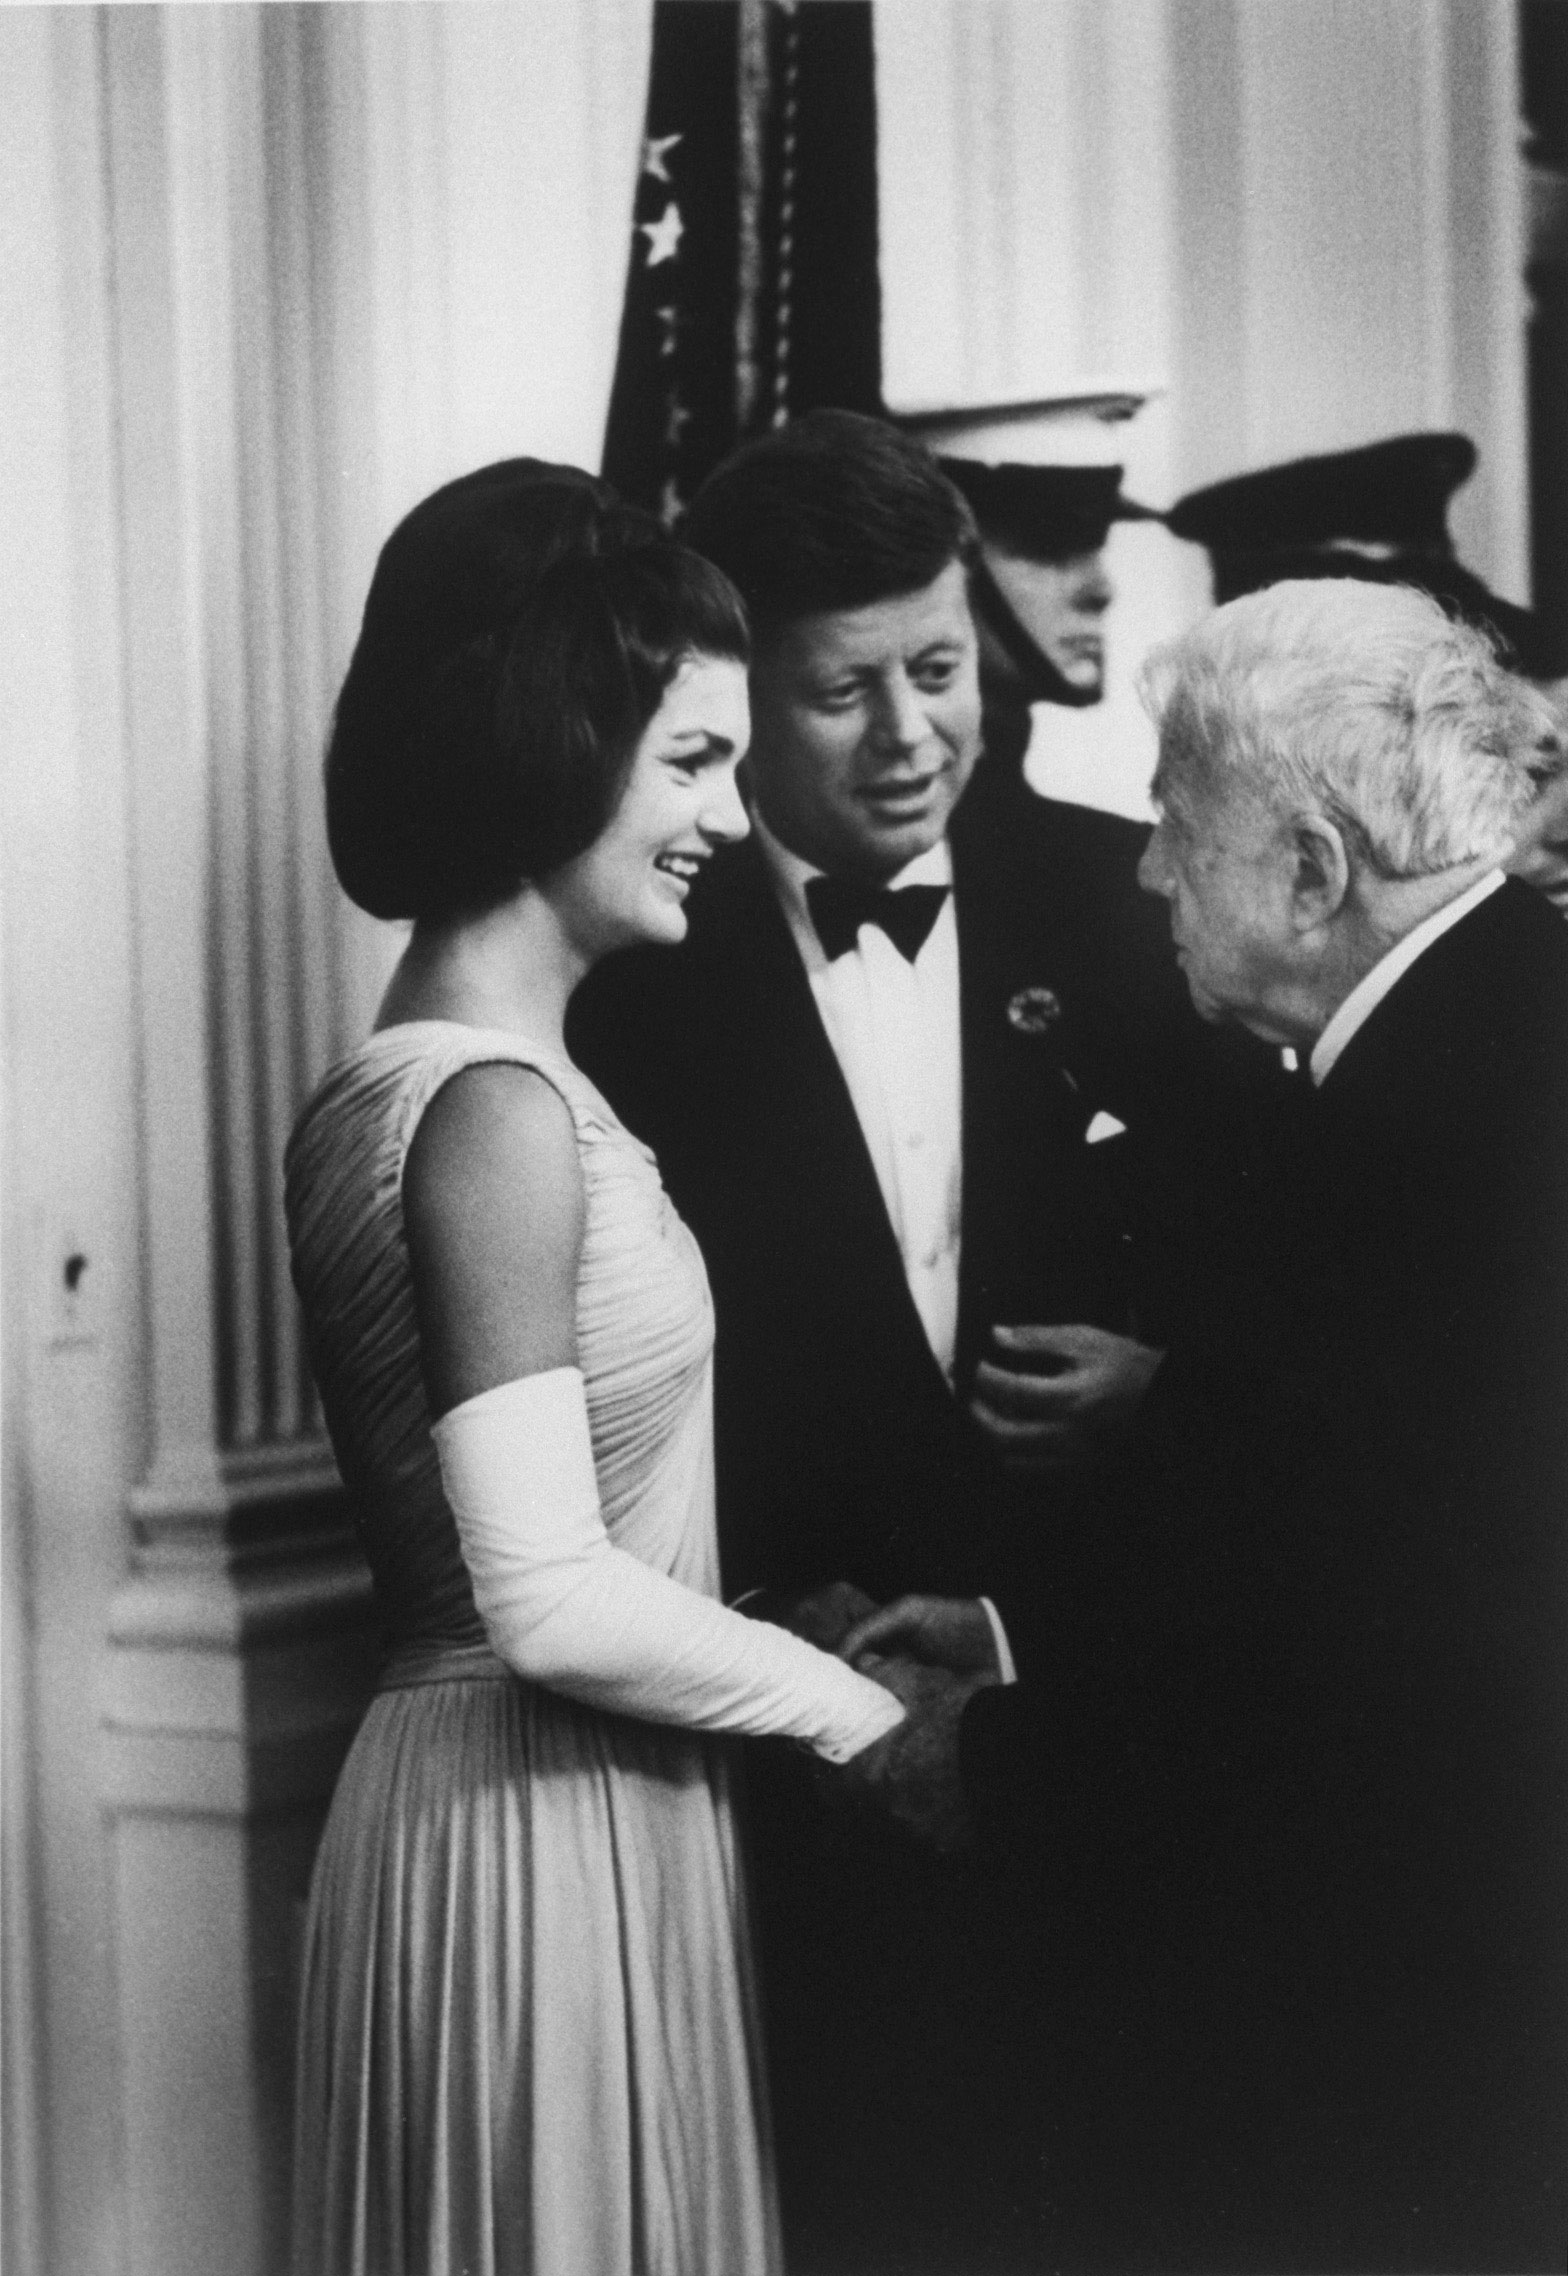 President John F. Kennedy and his wife Jackie chatting with poet Robert Frost at a party for Nobel Prize winners at the White House, 1962.